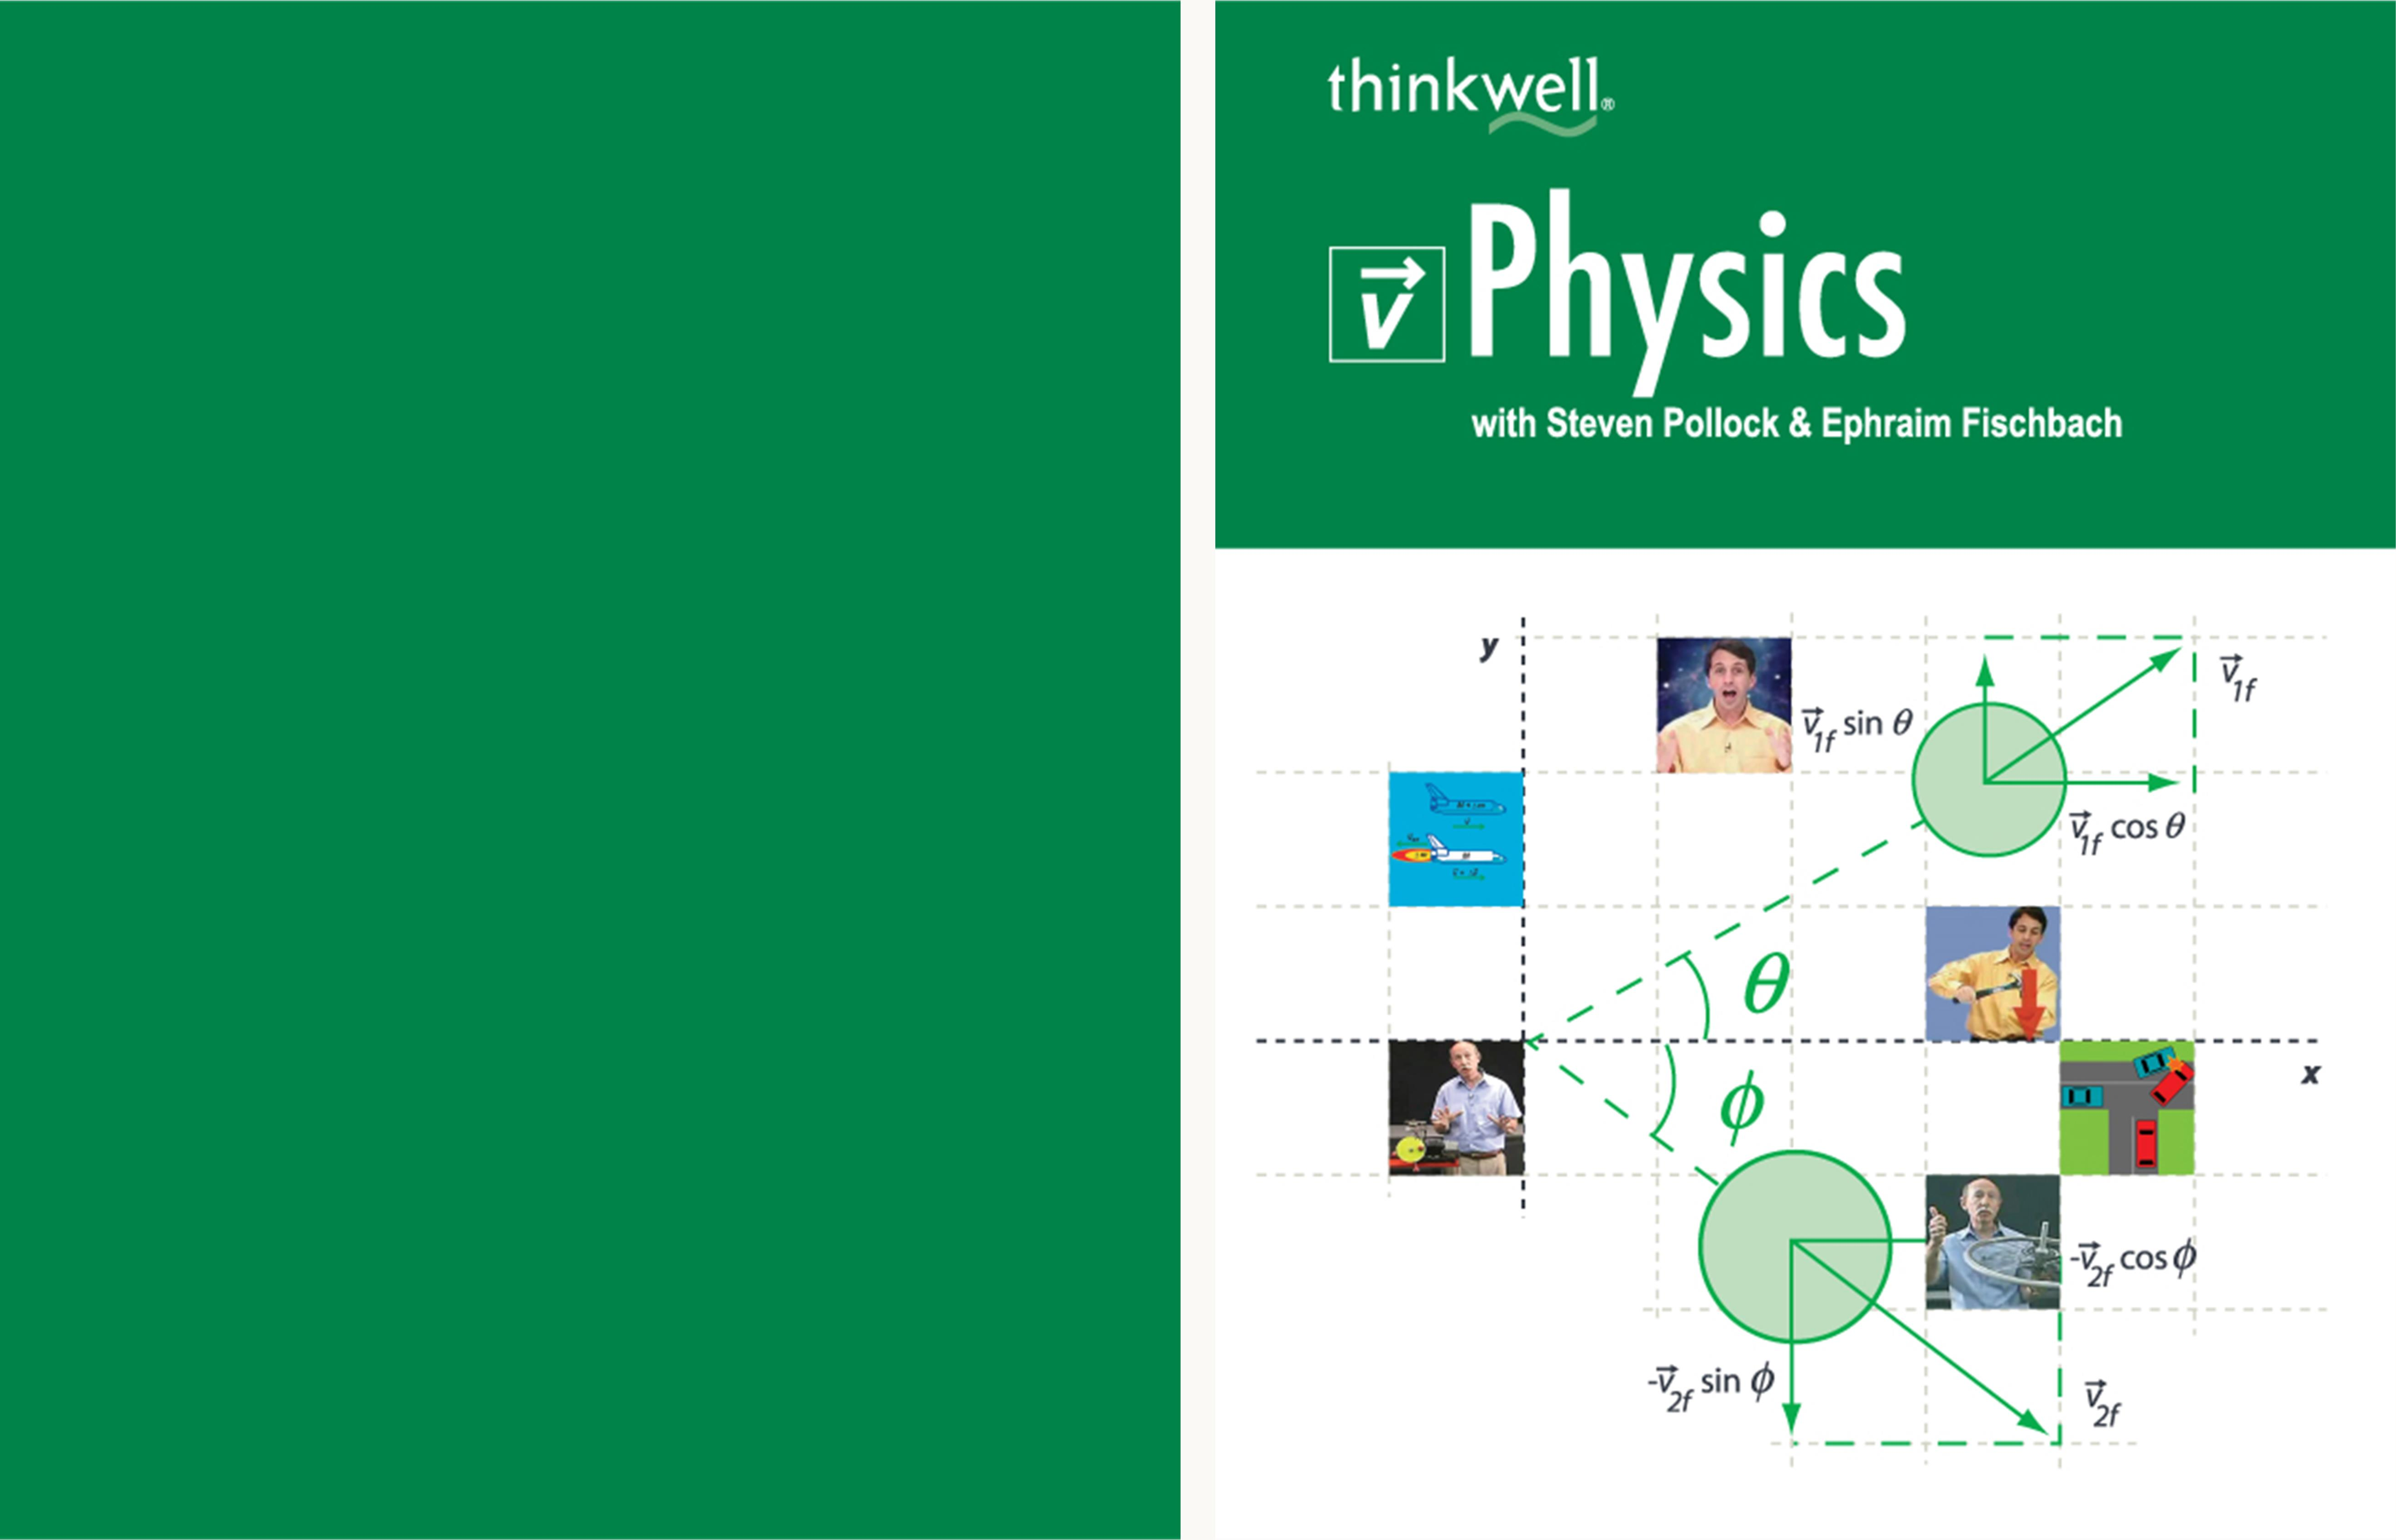 pysics coursework Phys 1 lec 000: course id: 010216: pre-university physics: this course covers the topics in ontario secondary schools essential for first year university physics.